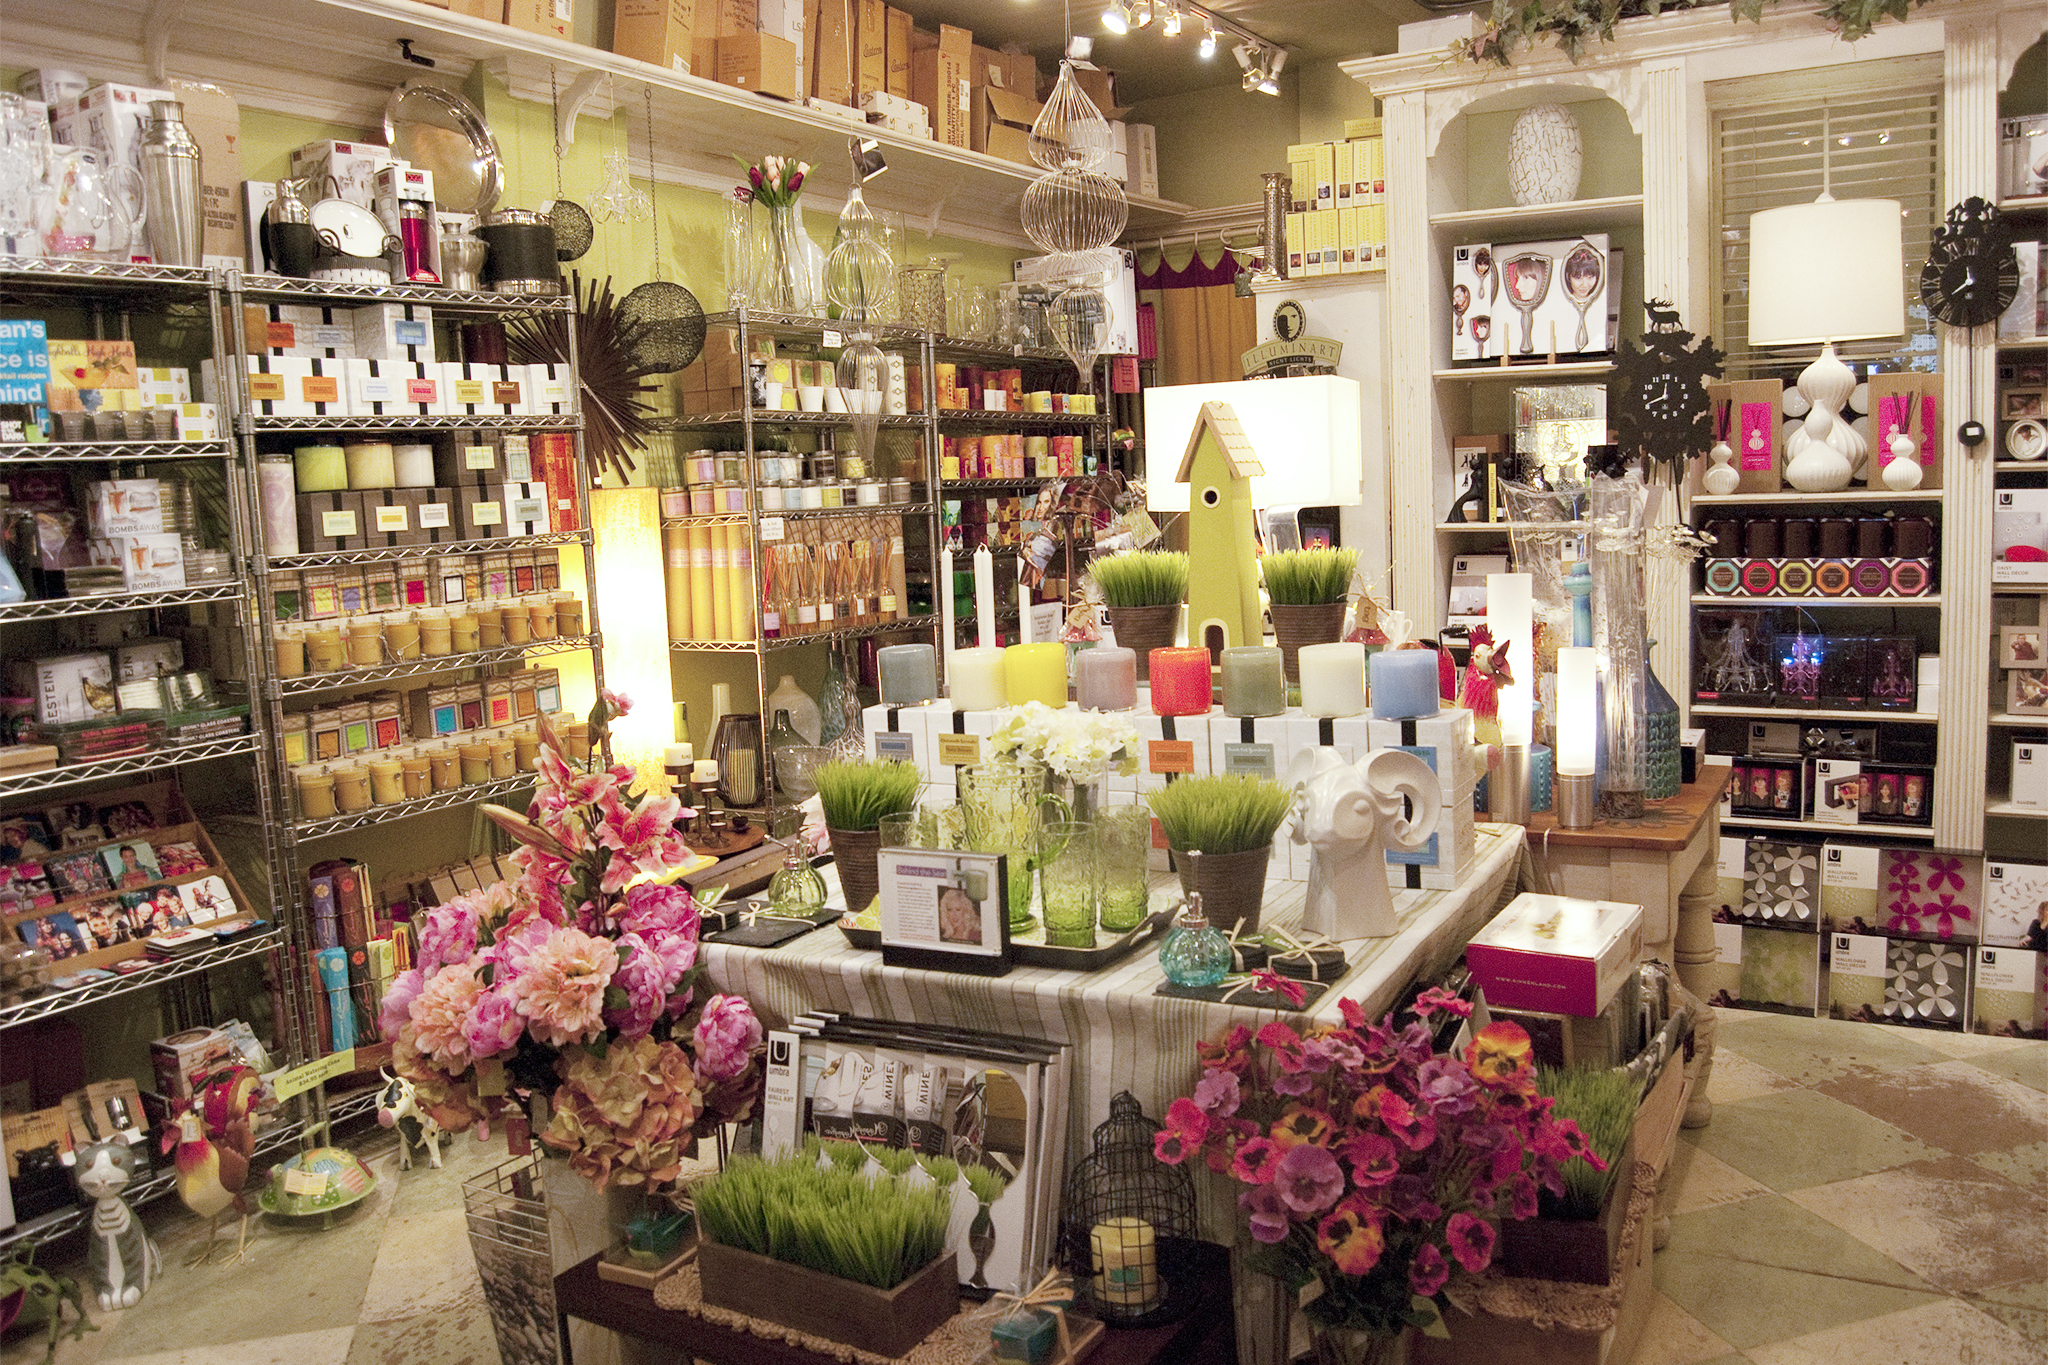 Home decor stores in nyc for decorating ideas and home furnishings delphinium home junglespirit Images